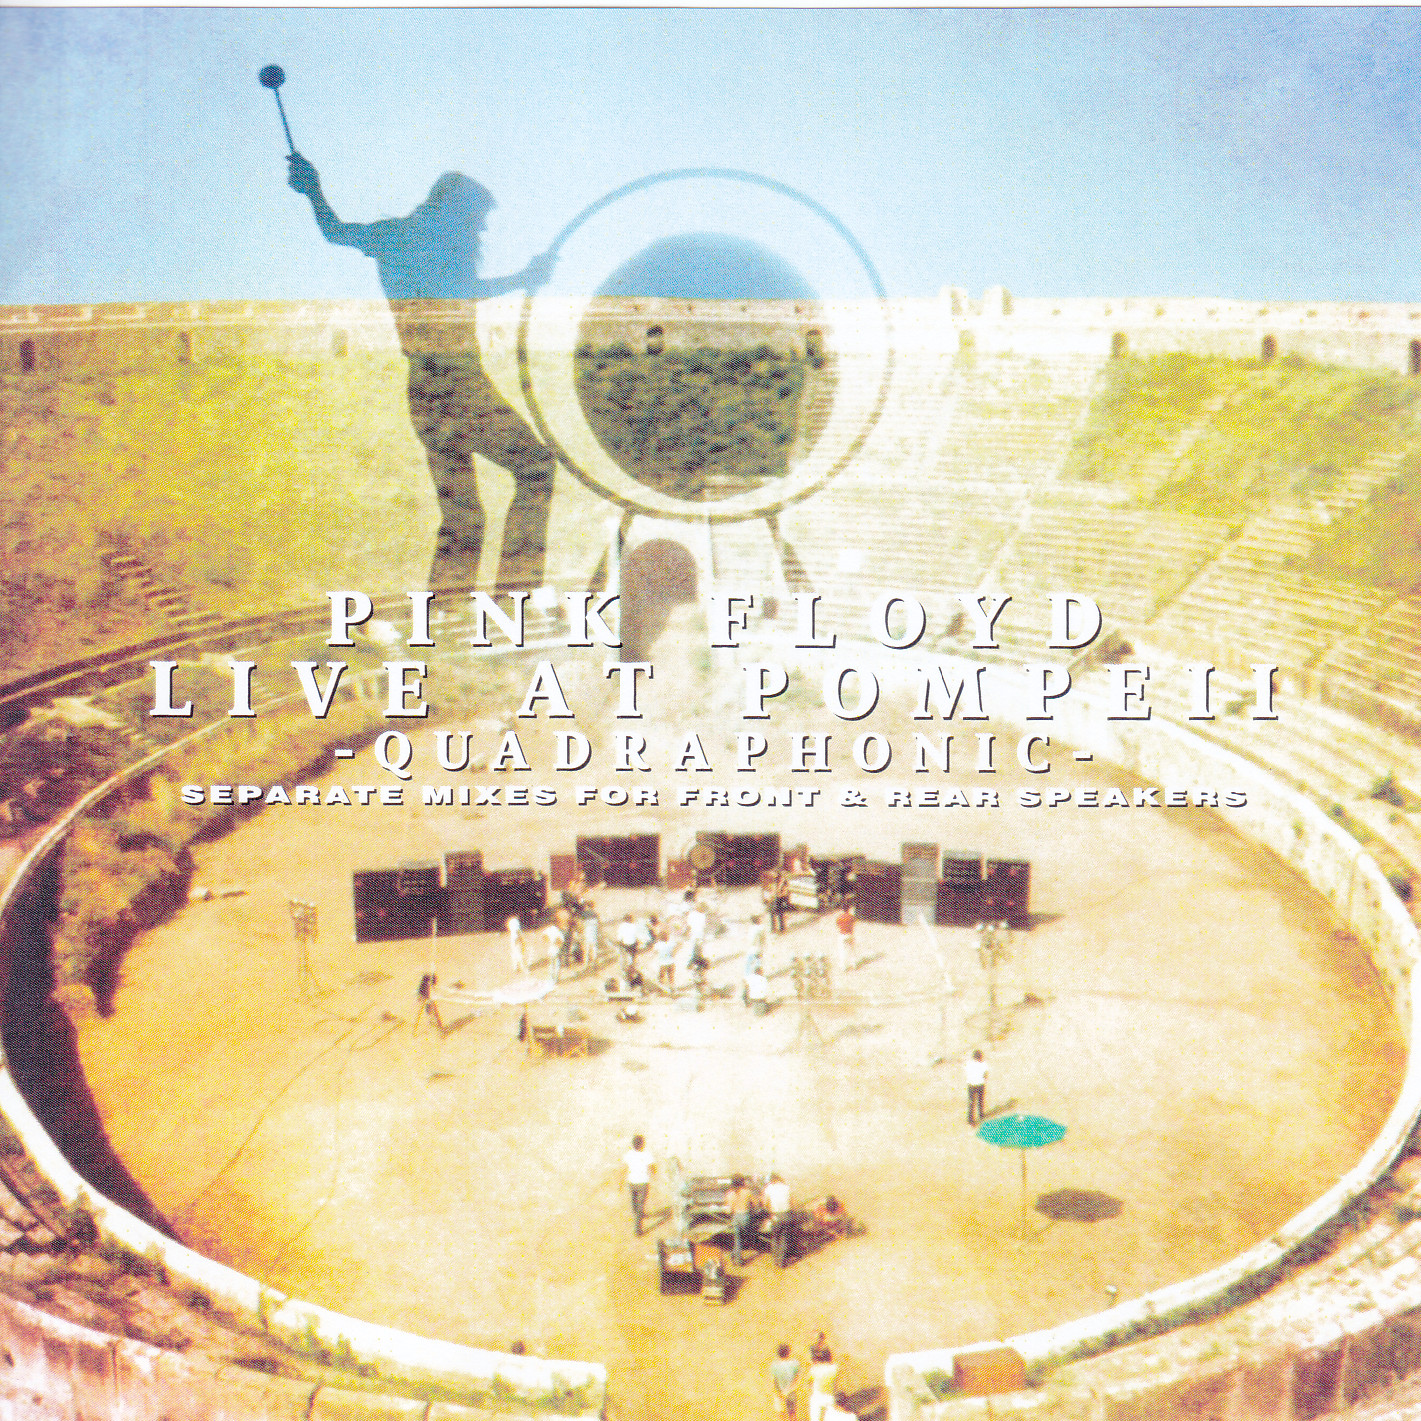 Pink Floyd - Live At Pompeii Quadraphonic Separate Mixes For Front & Rear  Speakers (2Single CDR) Non Label